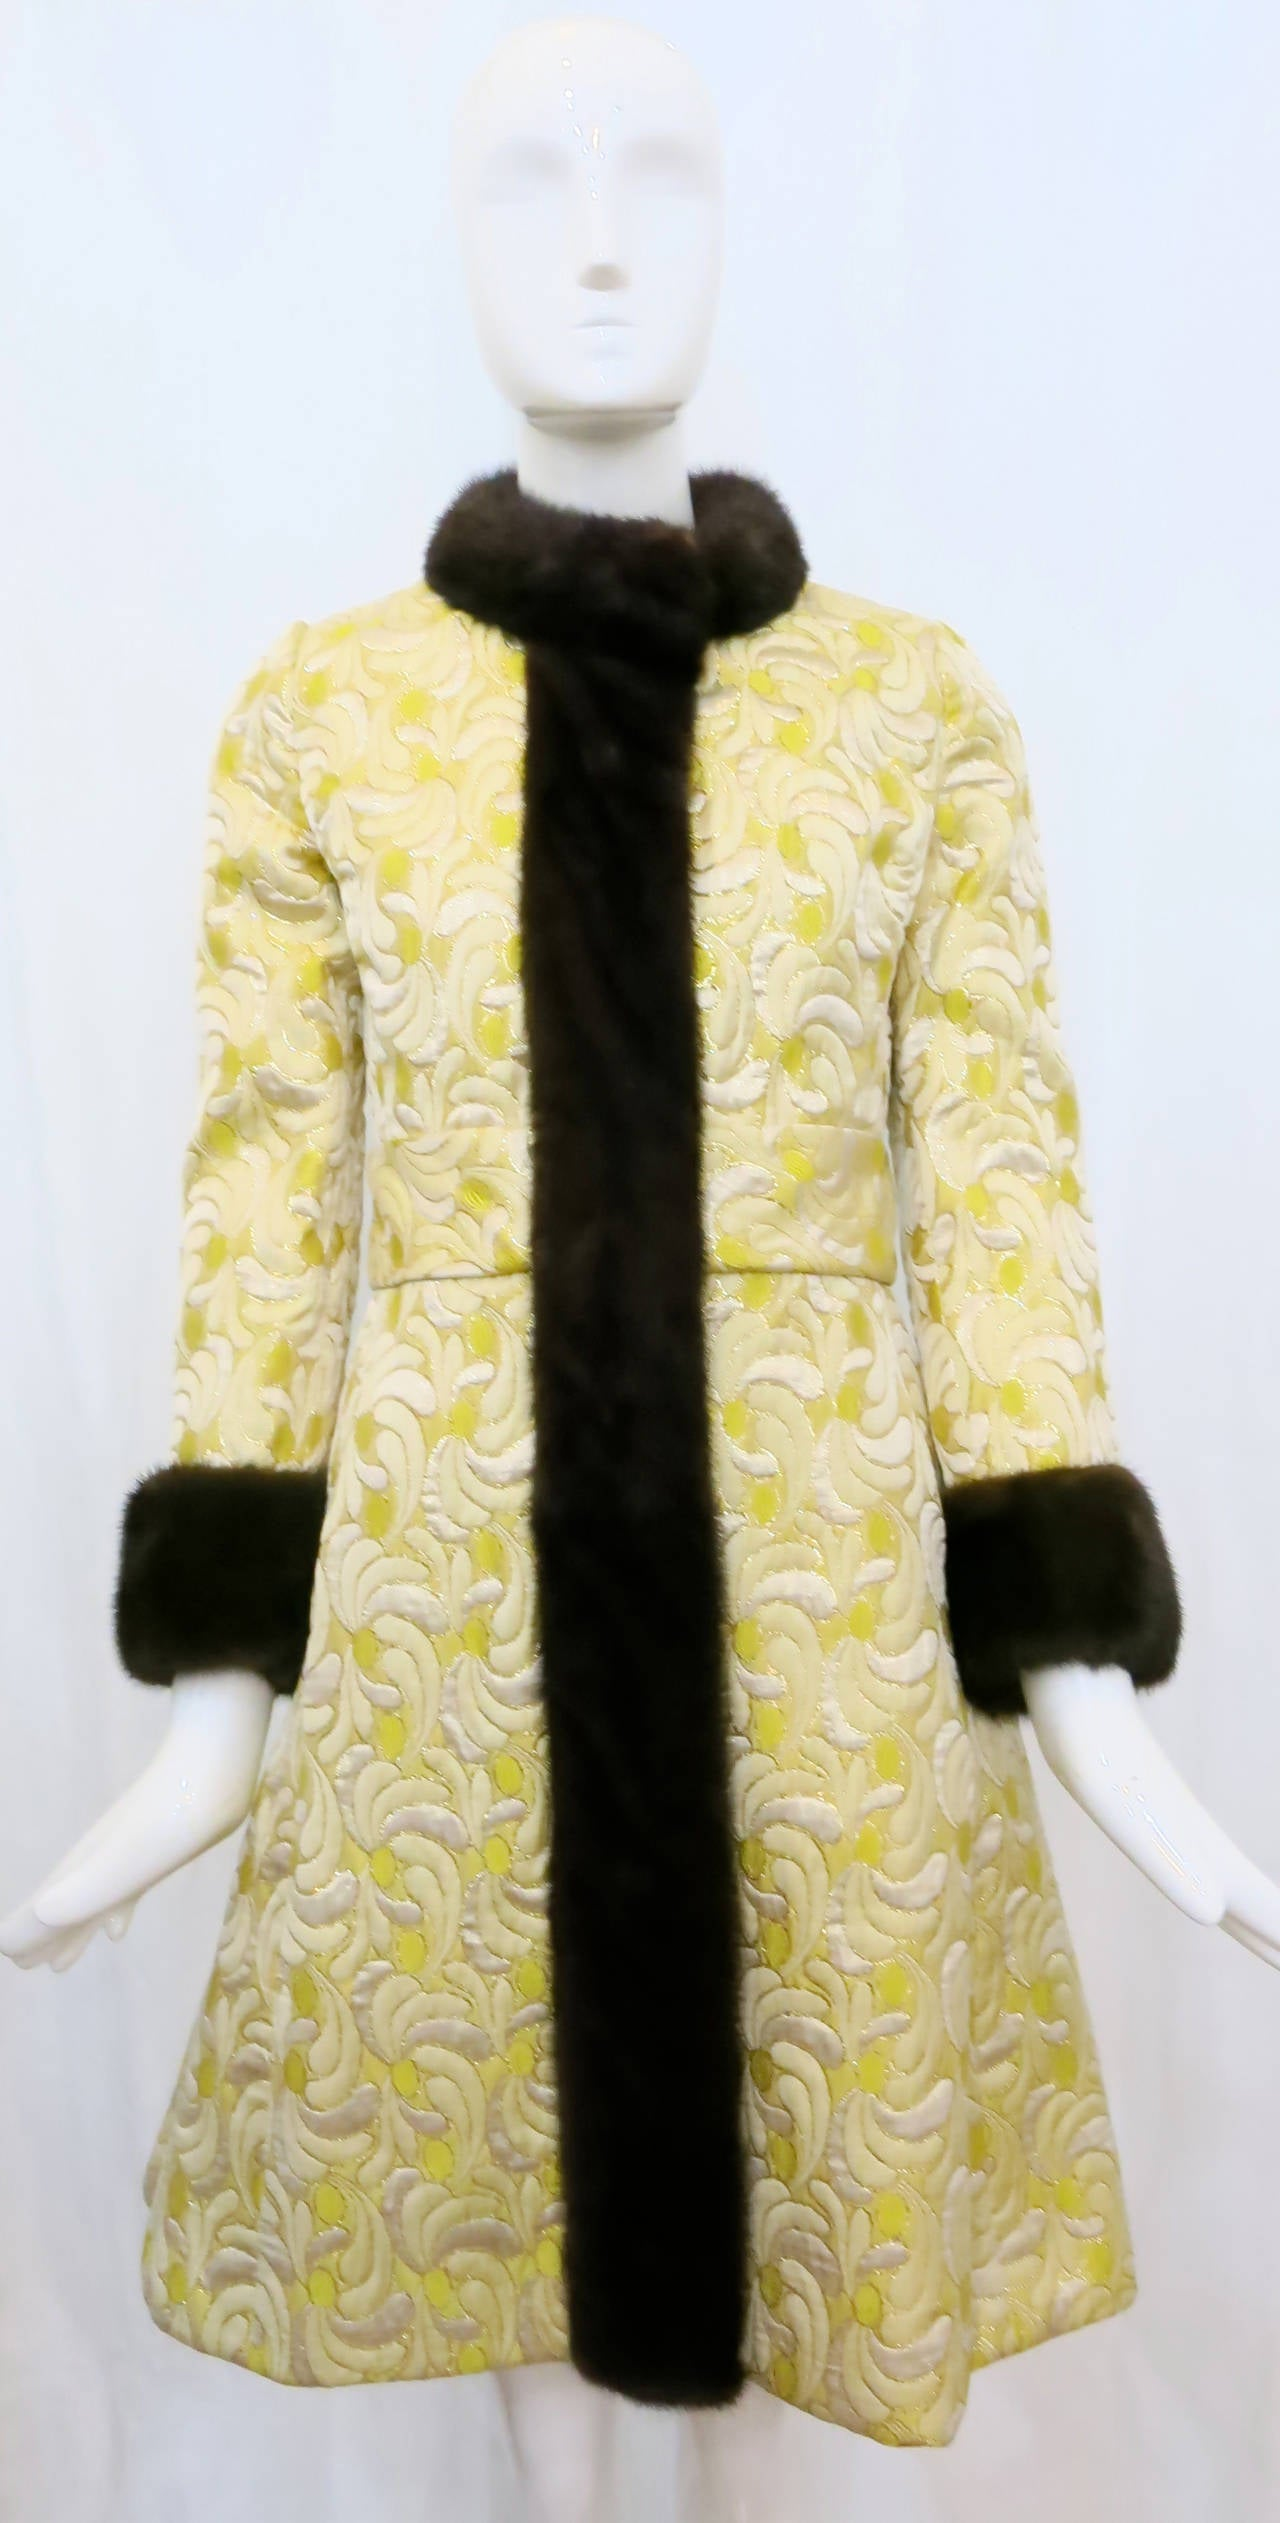 1960s Yellow and Gold Damask Dress and Coat Ensemble with Mink Trim 2